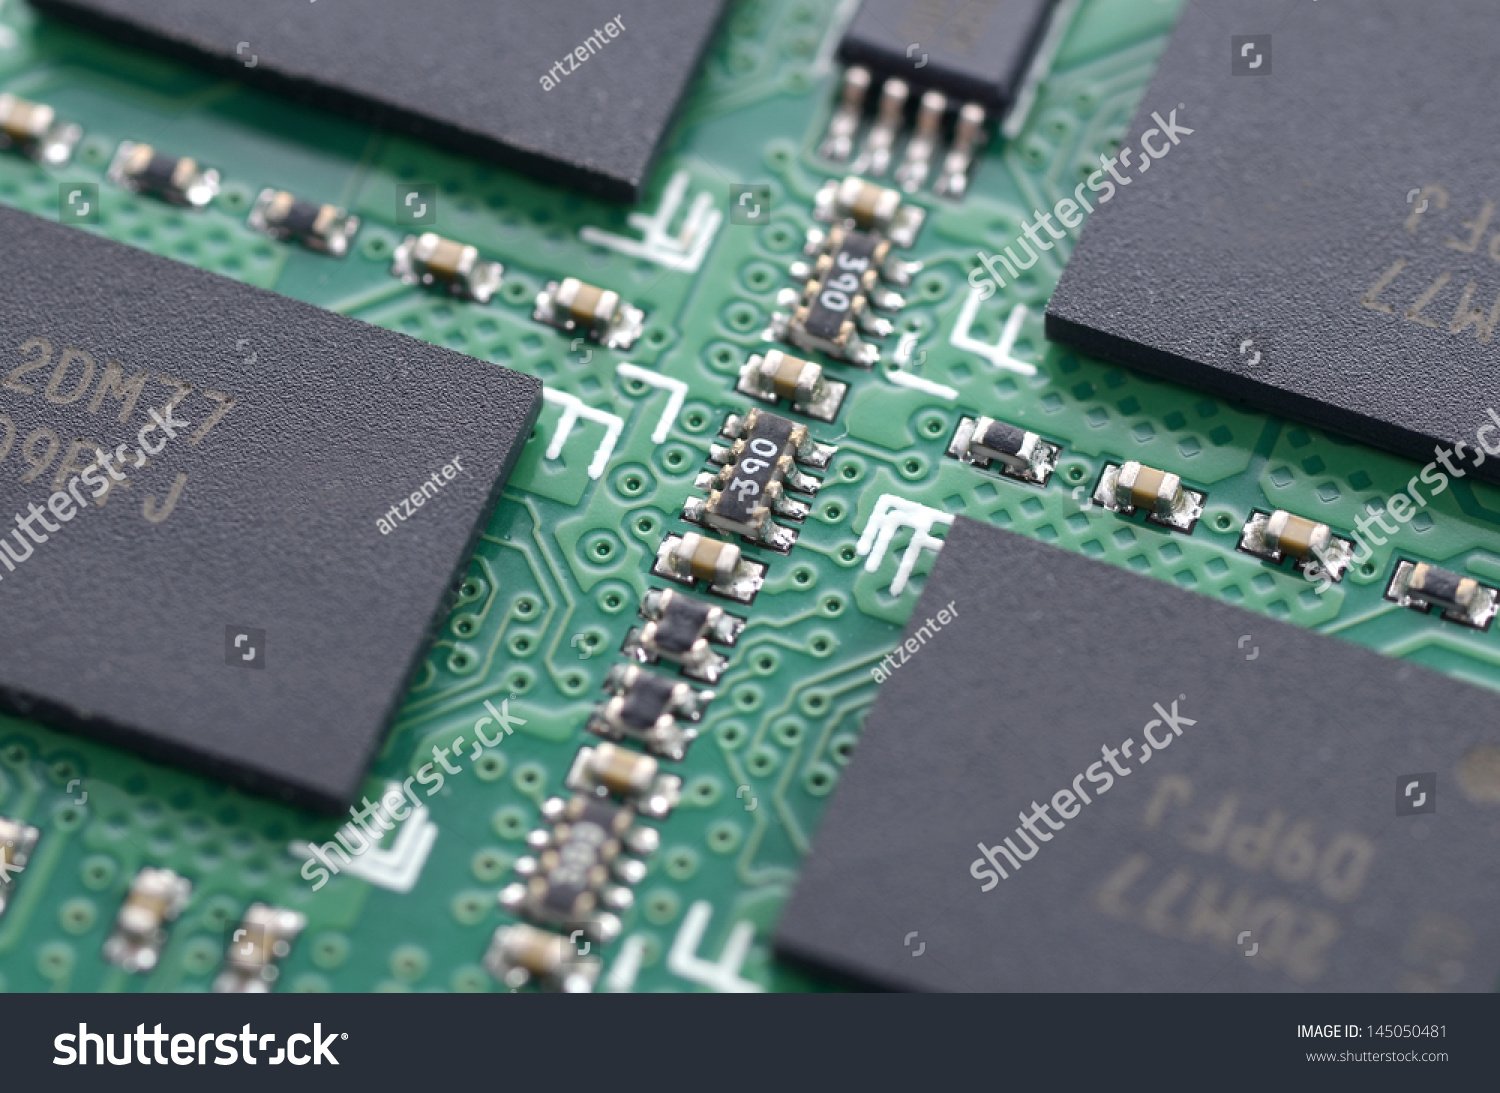 Computer Ram Memory Microchip Module Printed Stock Photo Edit Now Stockfoto Circuit Board Pcb Used In Industrial Electronic Or